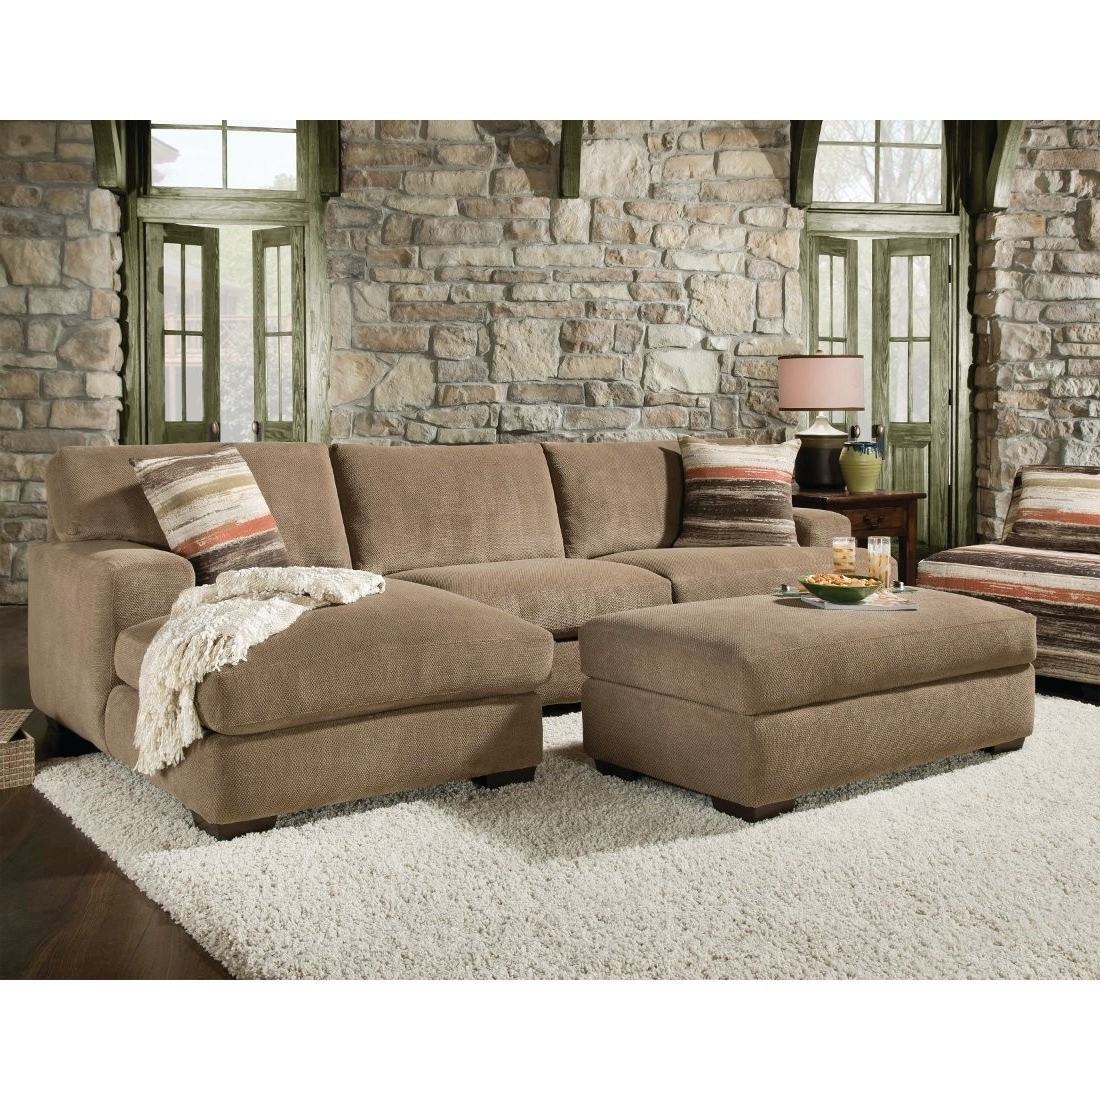 Recent Beautiful Sectional Sofa With Chaise And Ottoman Pictures With Sofas With Ottoman (View 14 of 15)